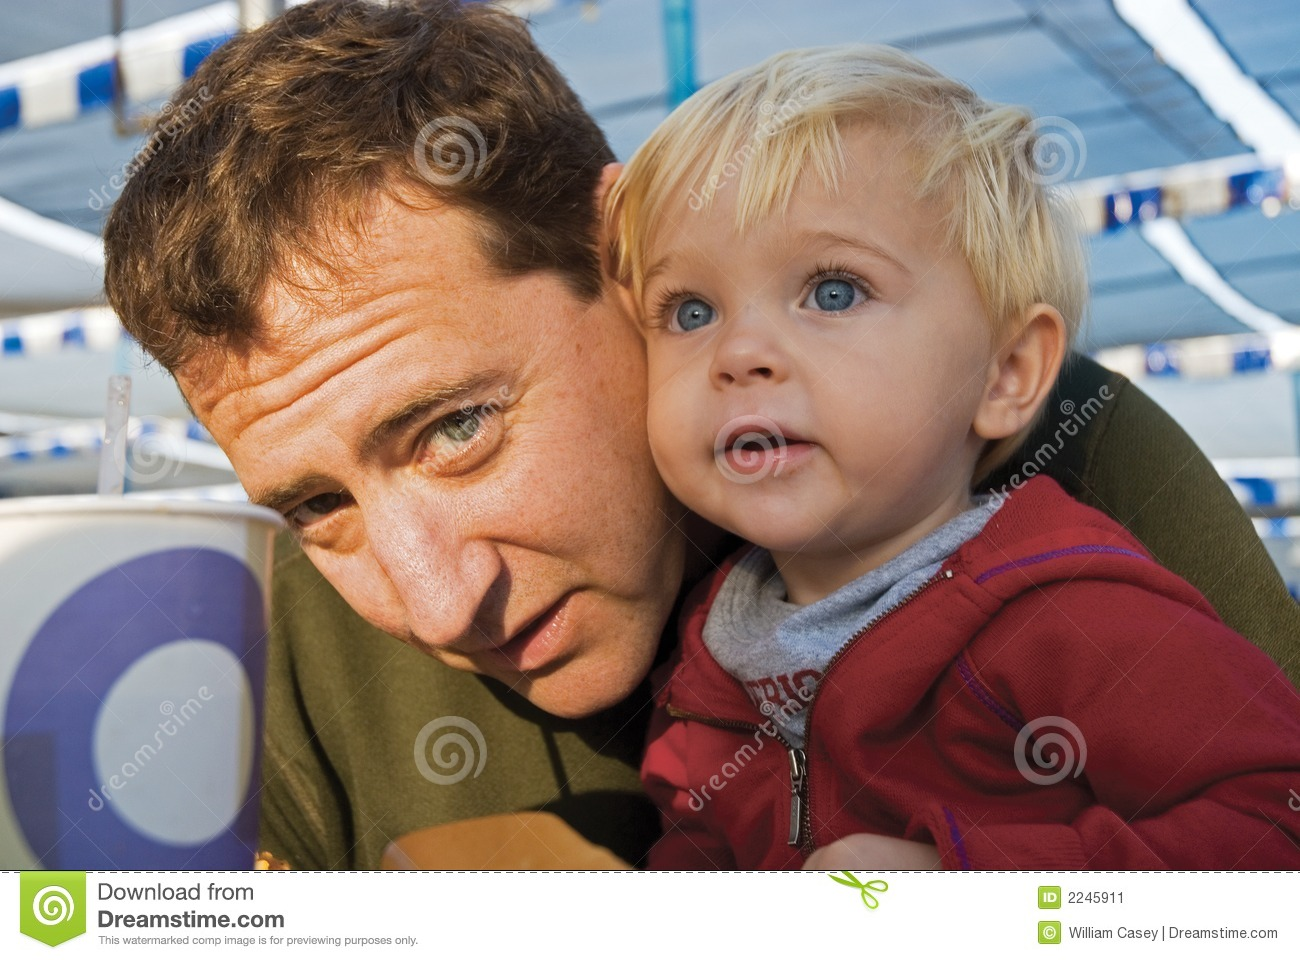 father and his son together at the beach petdcat dreamstime com